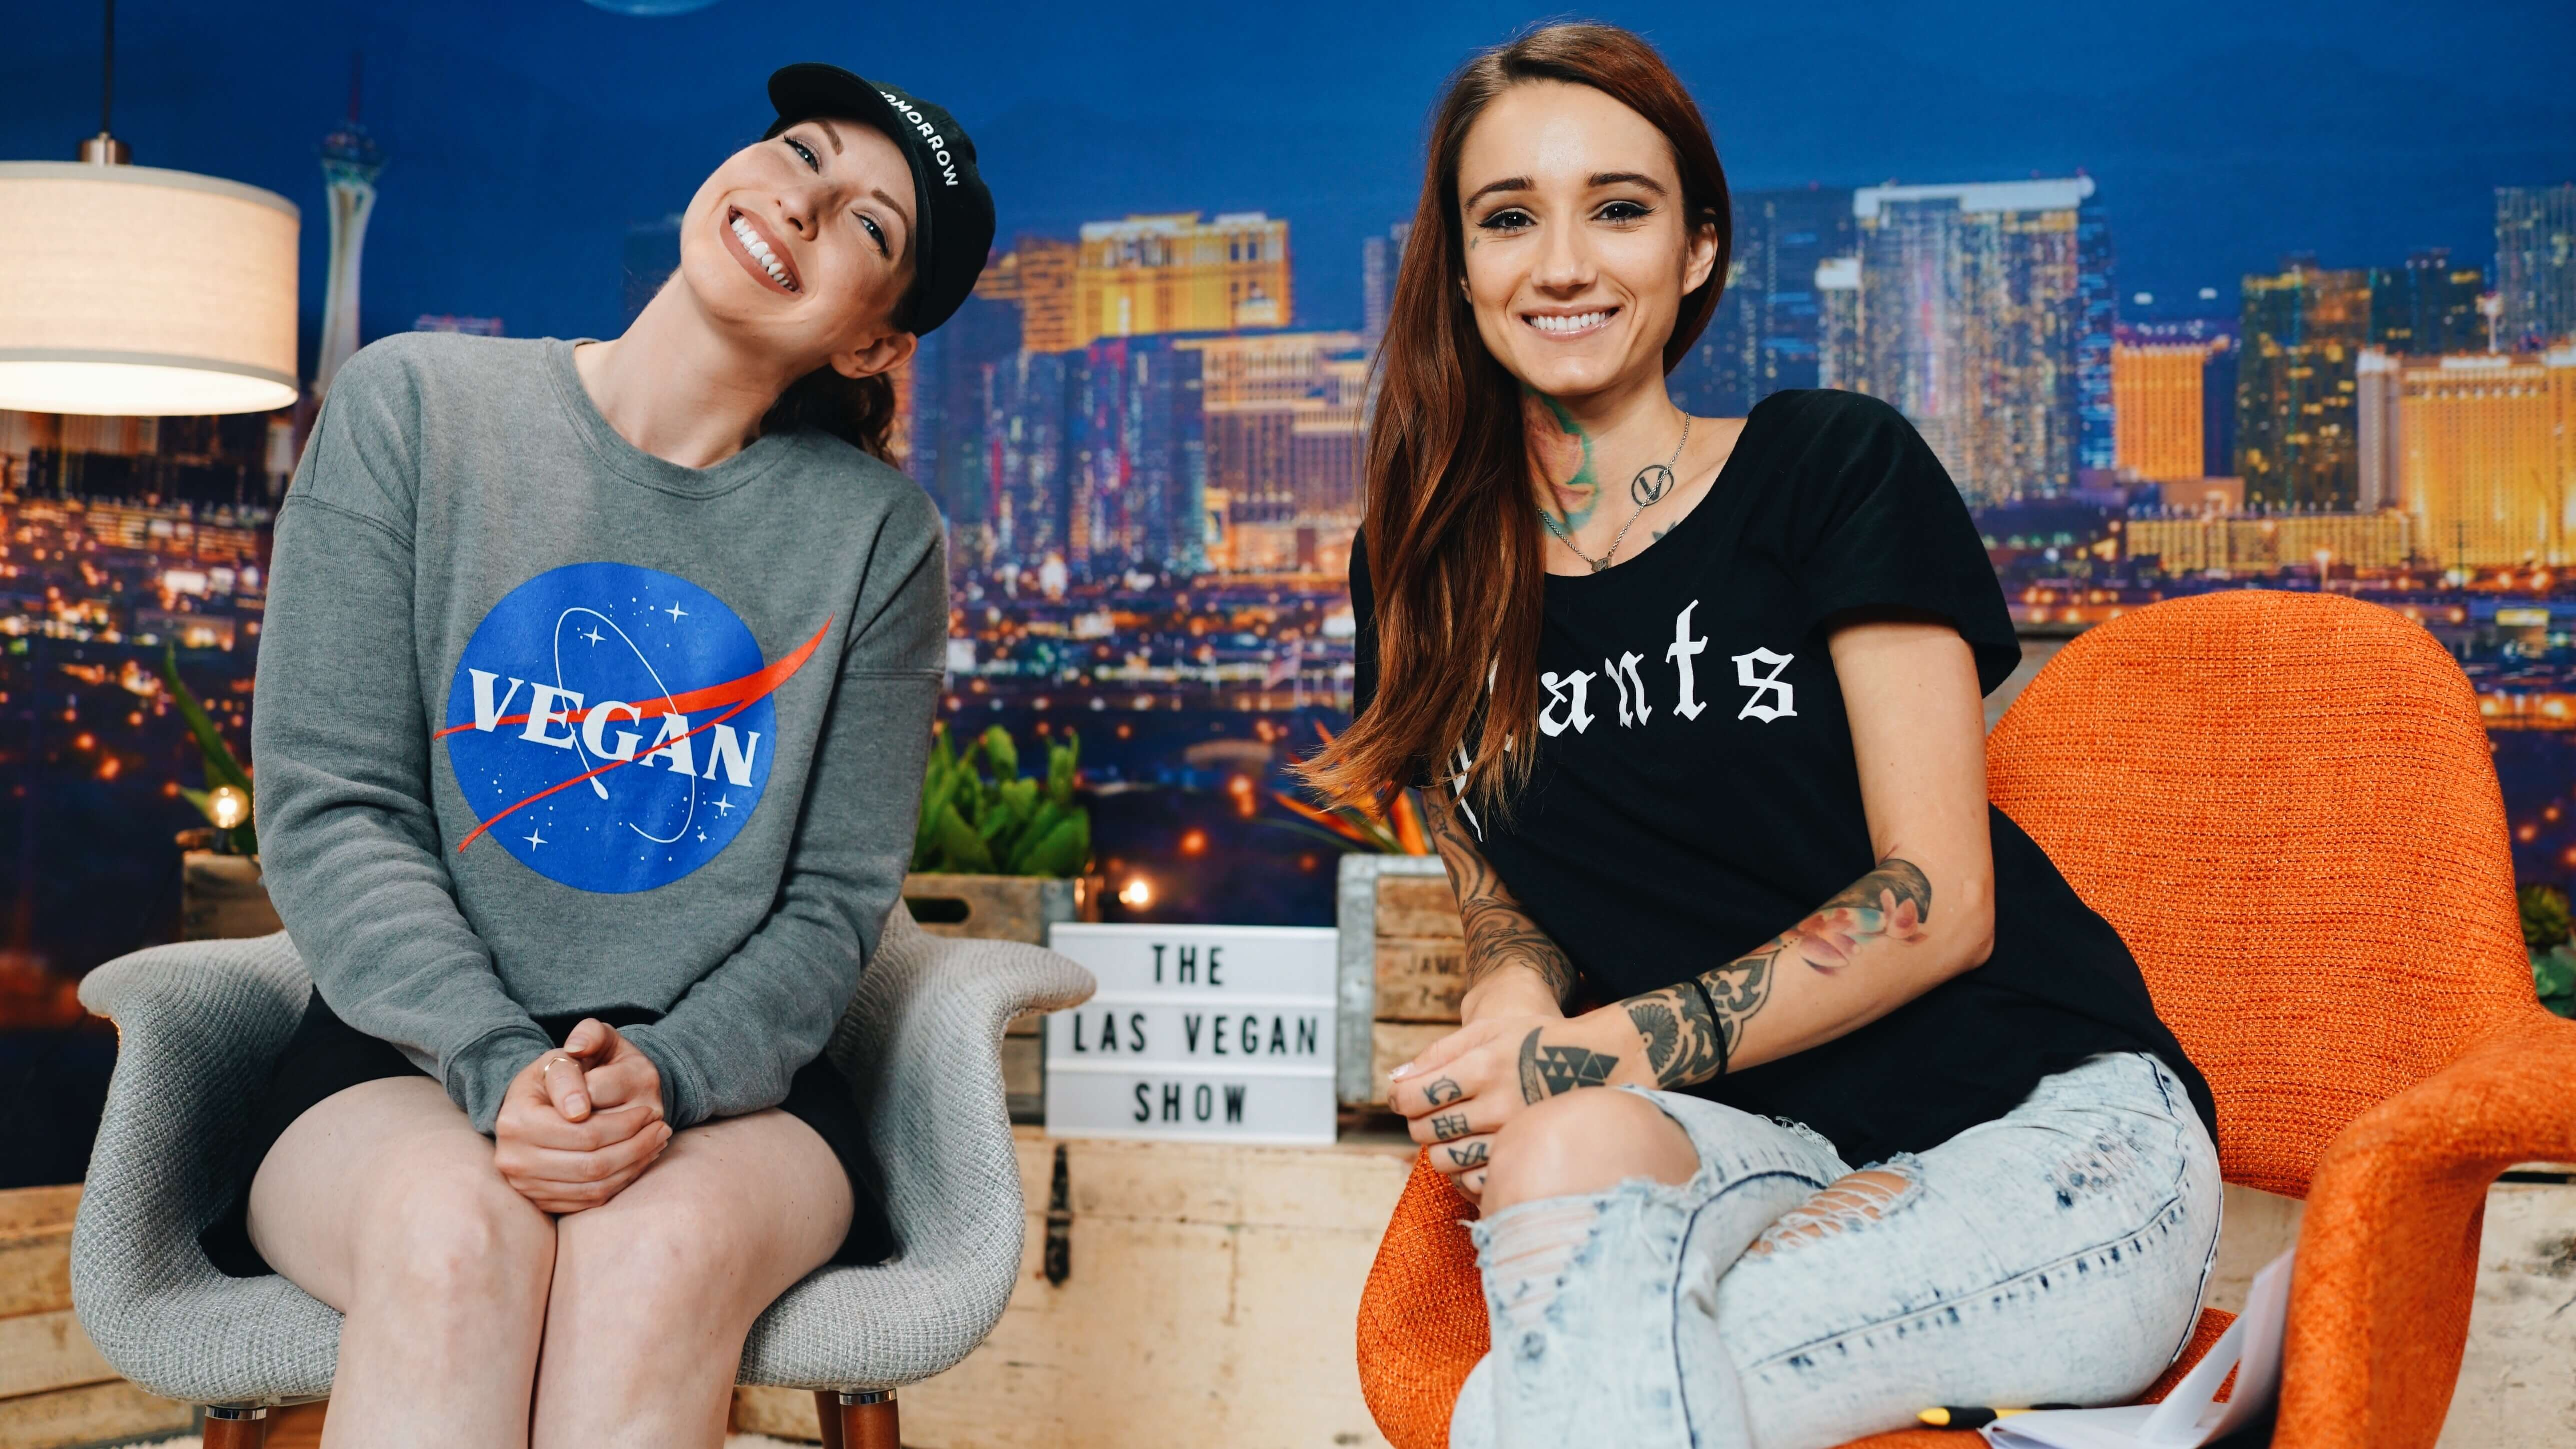 'The Las Vegan Show' Brings a 'Tonight Show' Style Approach to the Vegan Diet